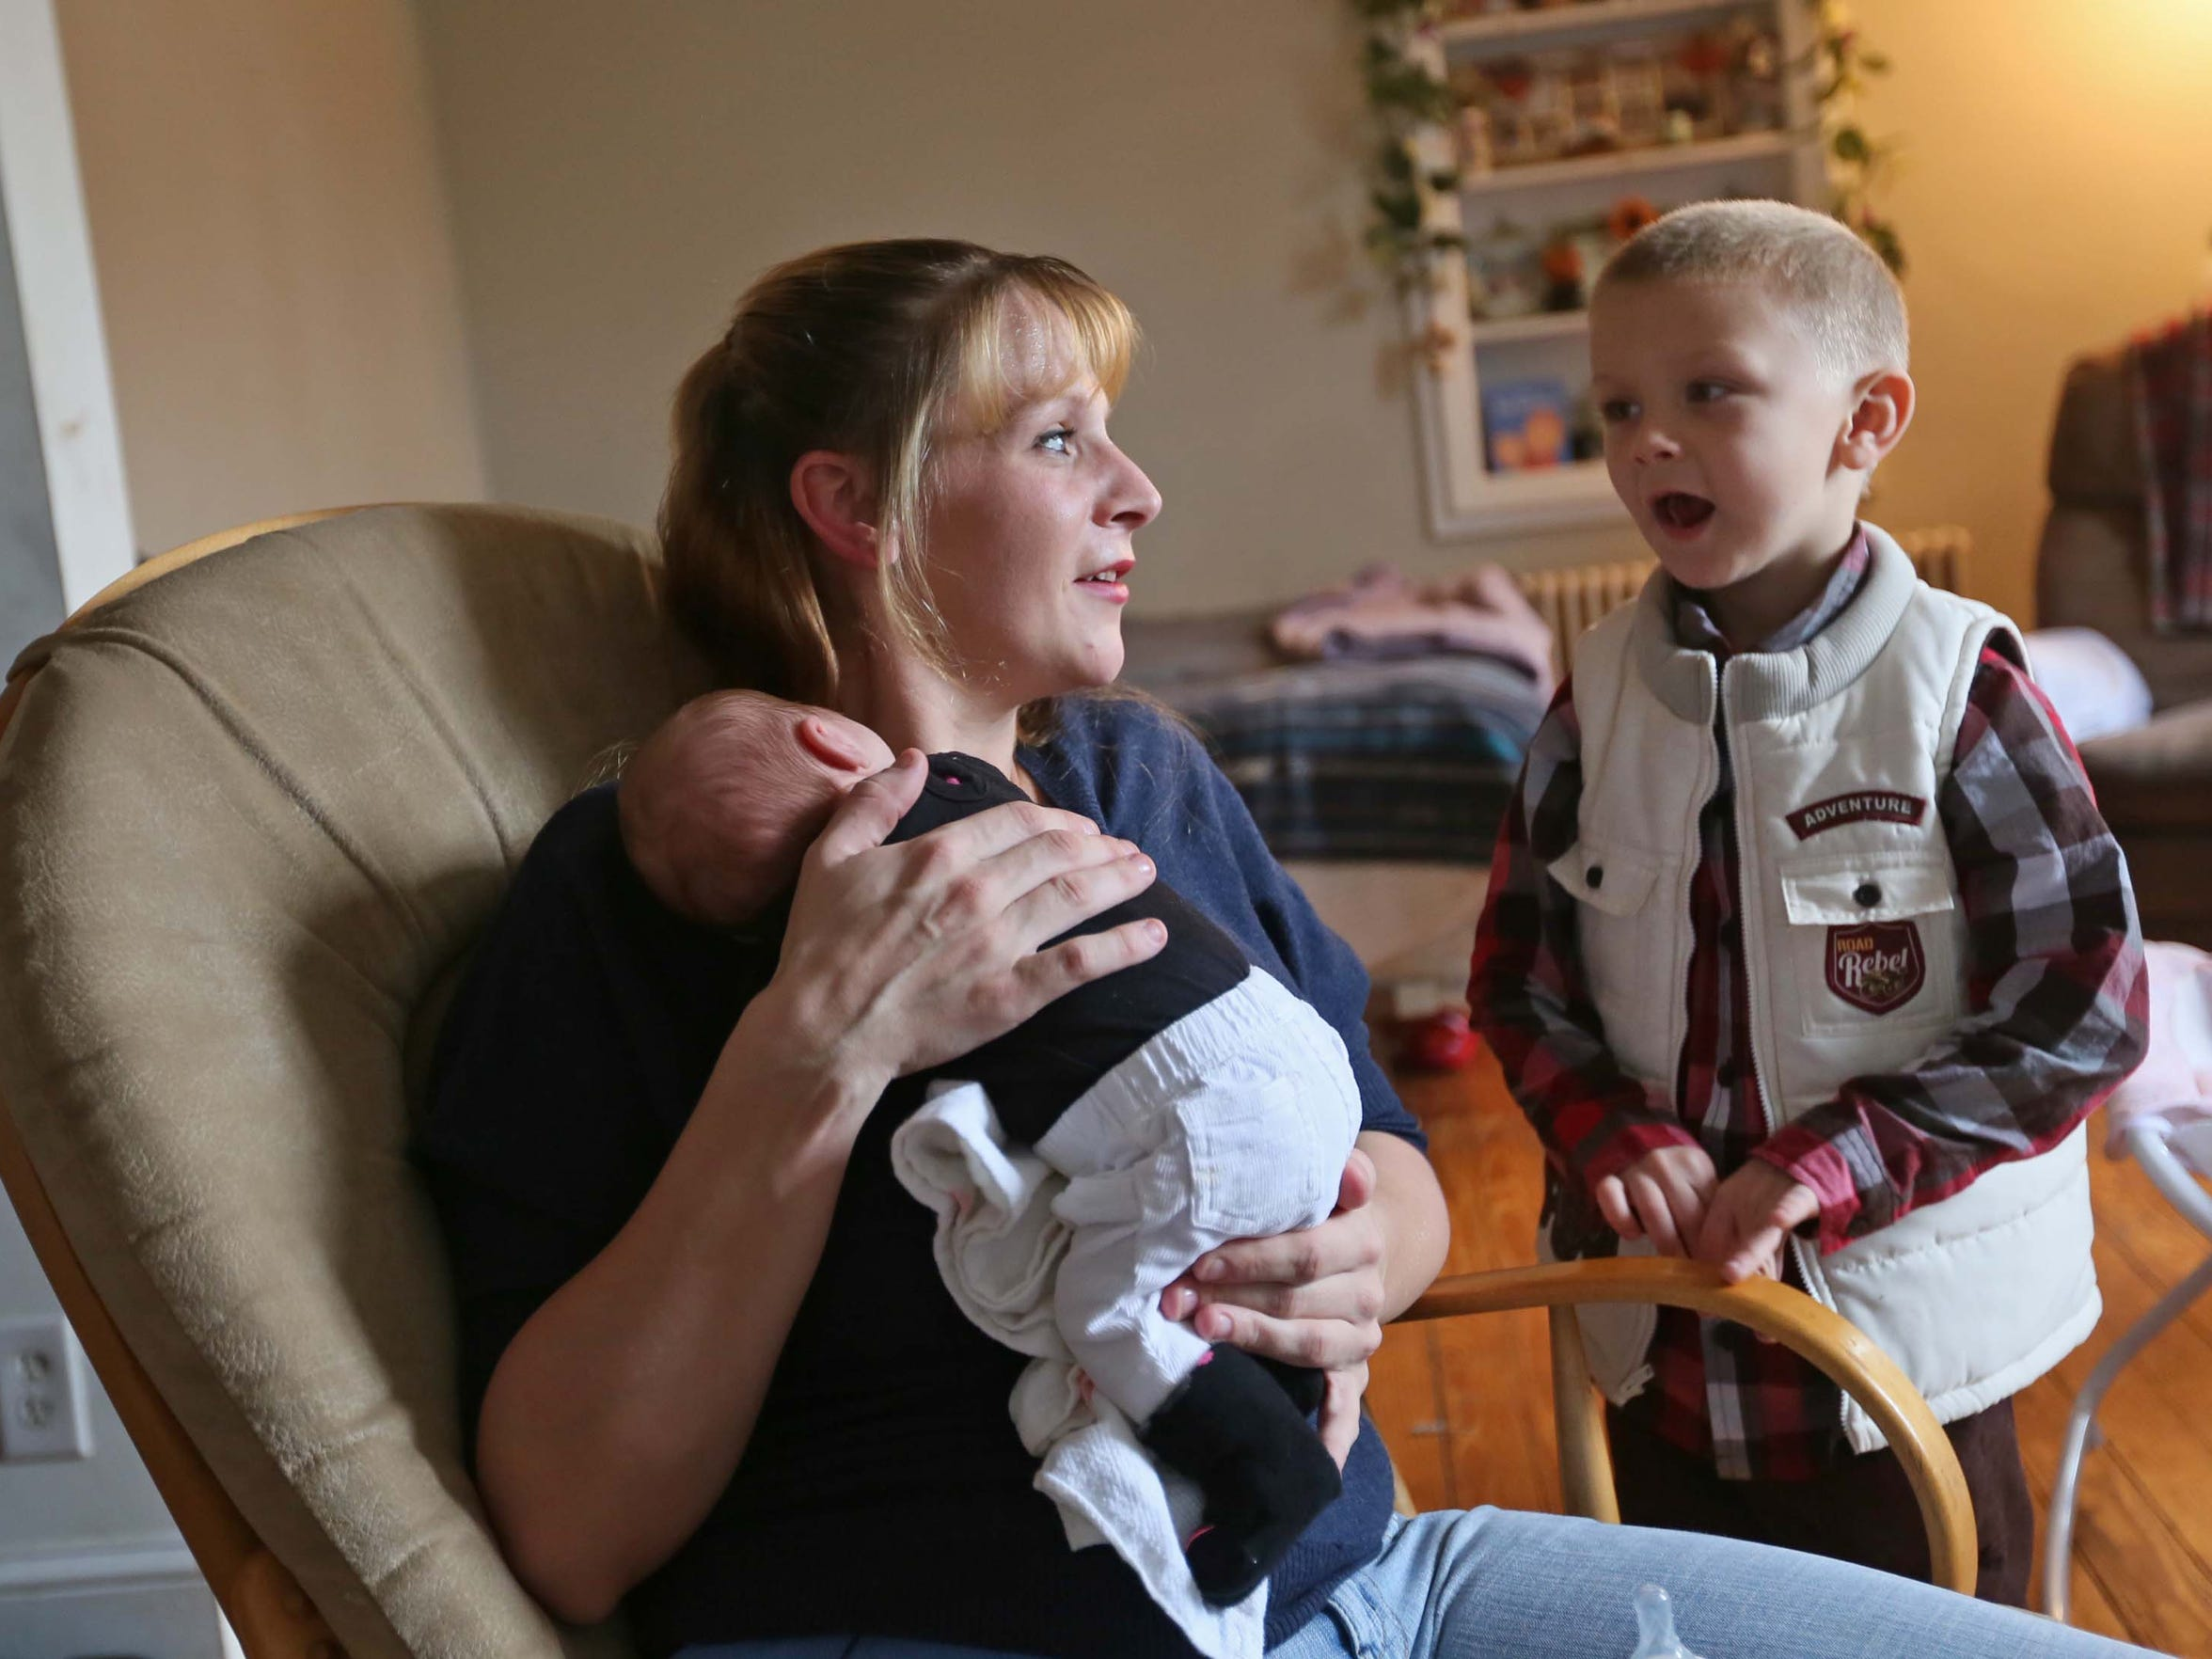 31 year-old Courtney Murphy rocks her 2-week-old daughter Sophia while talking to Daniel, her 6-year-old son. A younger son, 2-year-old Duke, and Sophia were both born while Murphy was using methadone to treat her addiction to heroin.